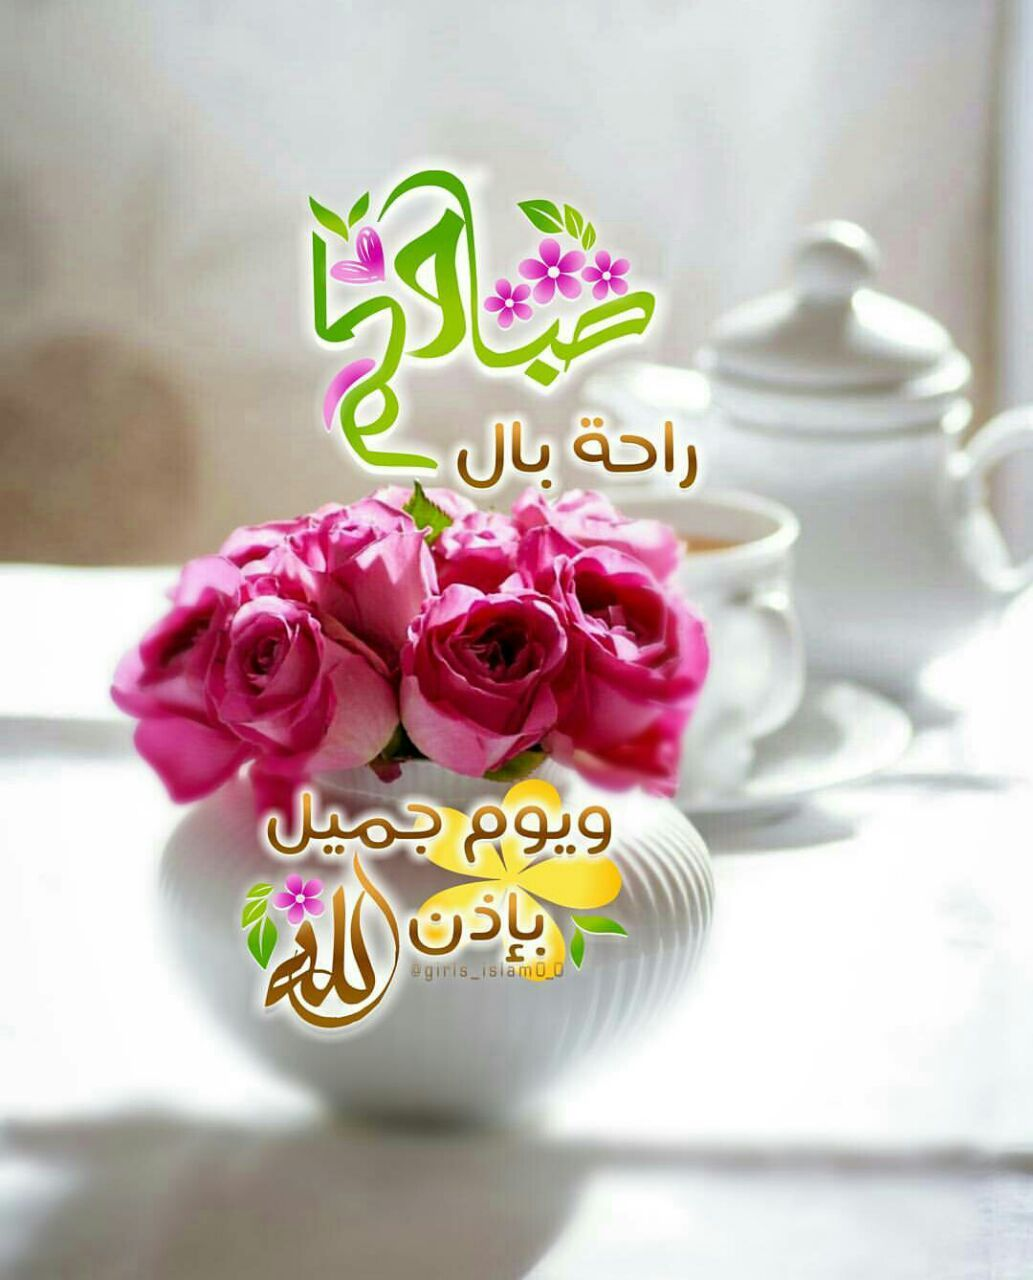 Good Morning صباح الخير Good Morning Arabic Good Morning Images Flowers Beautiful Morning Messages